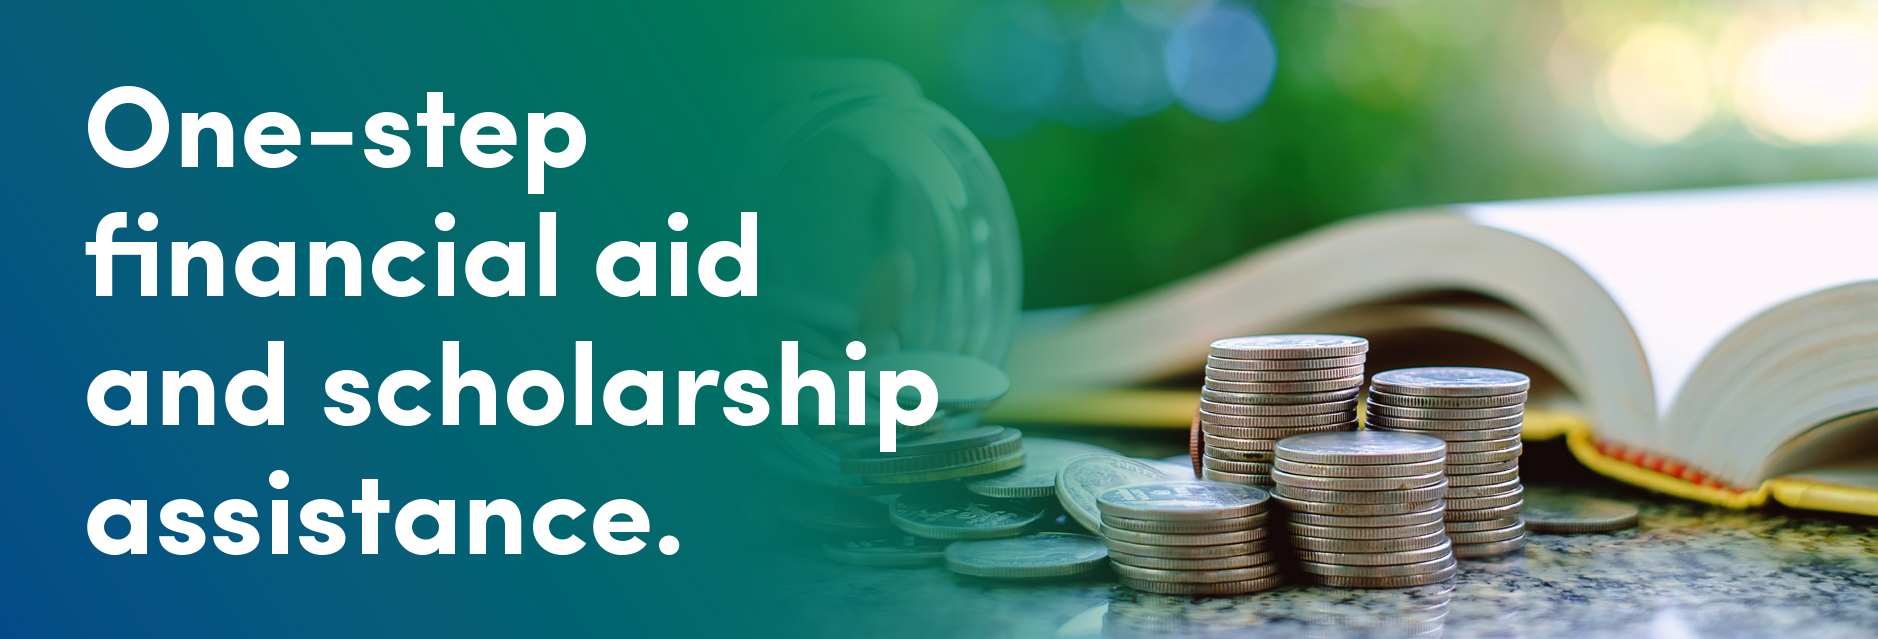 One-step financial aid and scholarship assistance